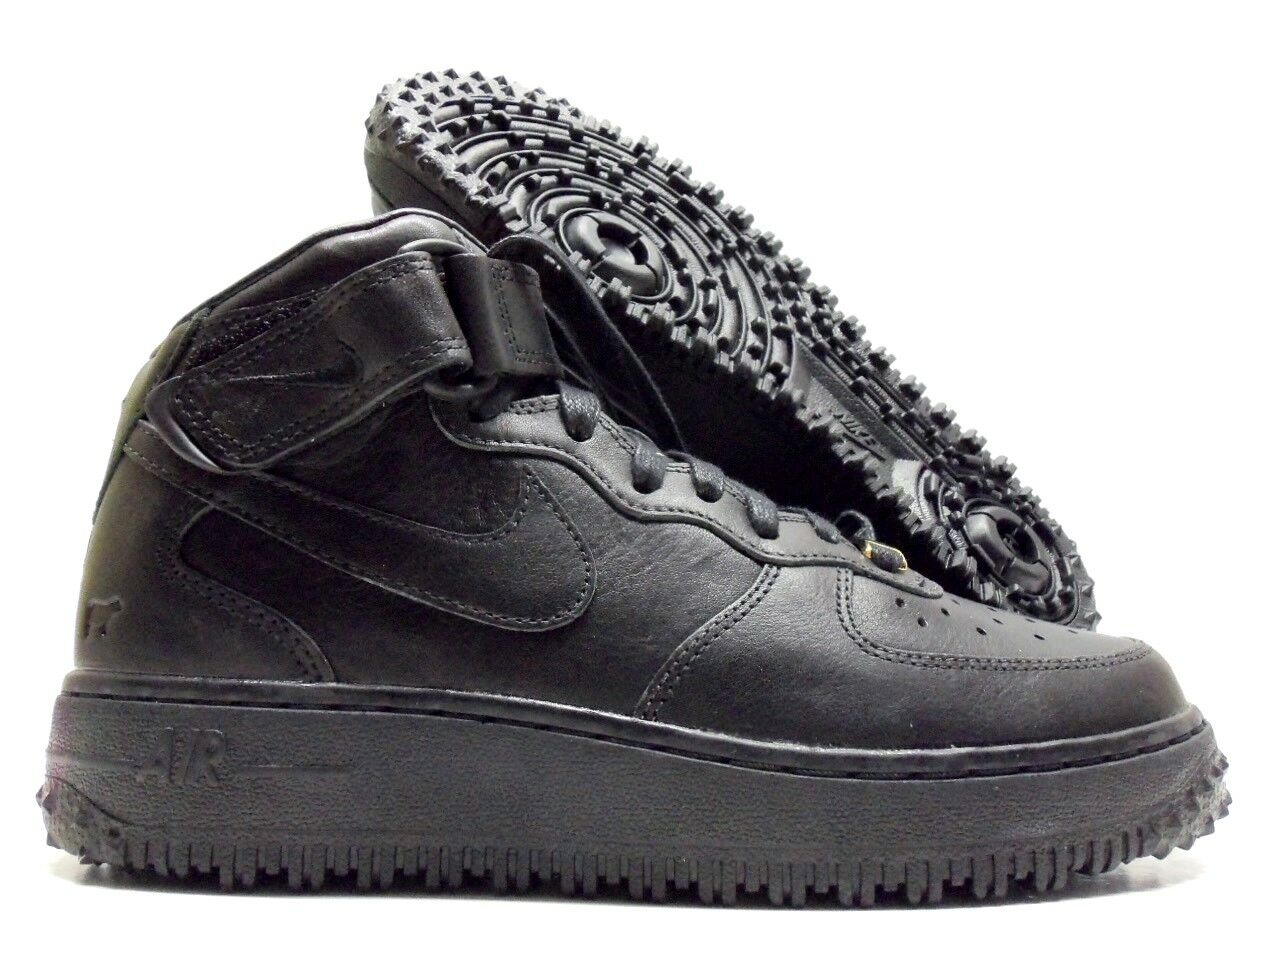 NIKE AIR FORCE 1 PREMIUM ID WILL LEATHER GOODS BLACK SIZE MEN'S 6 [921292-991]